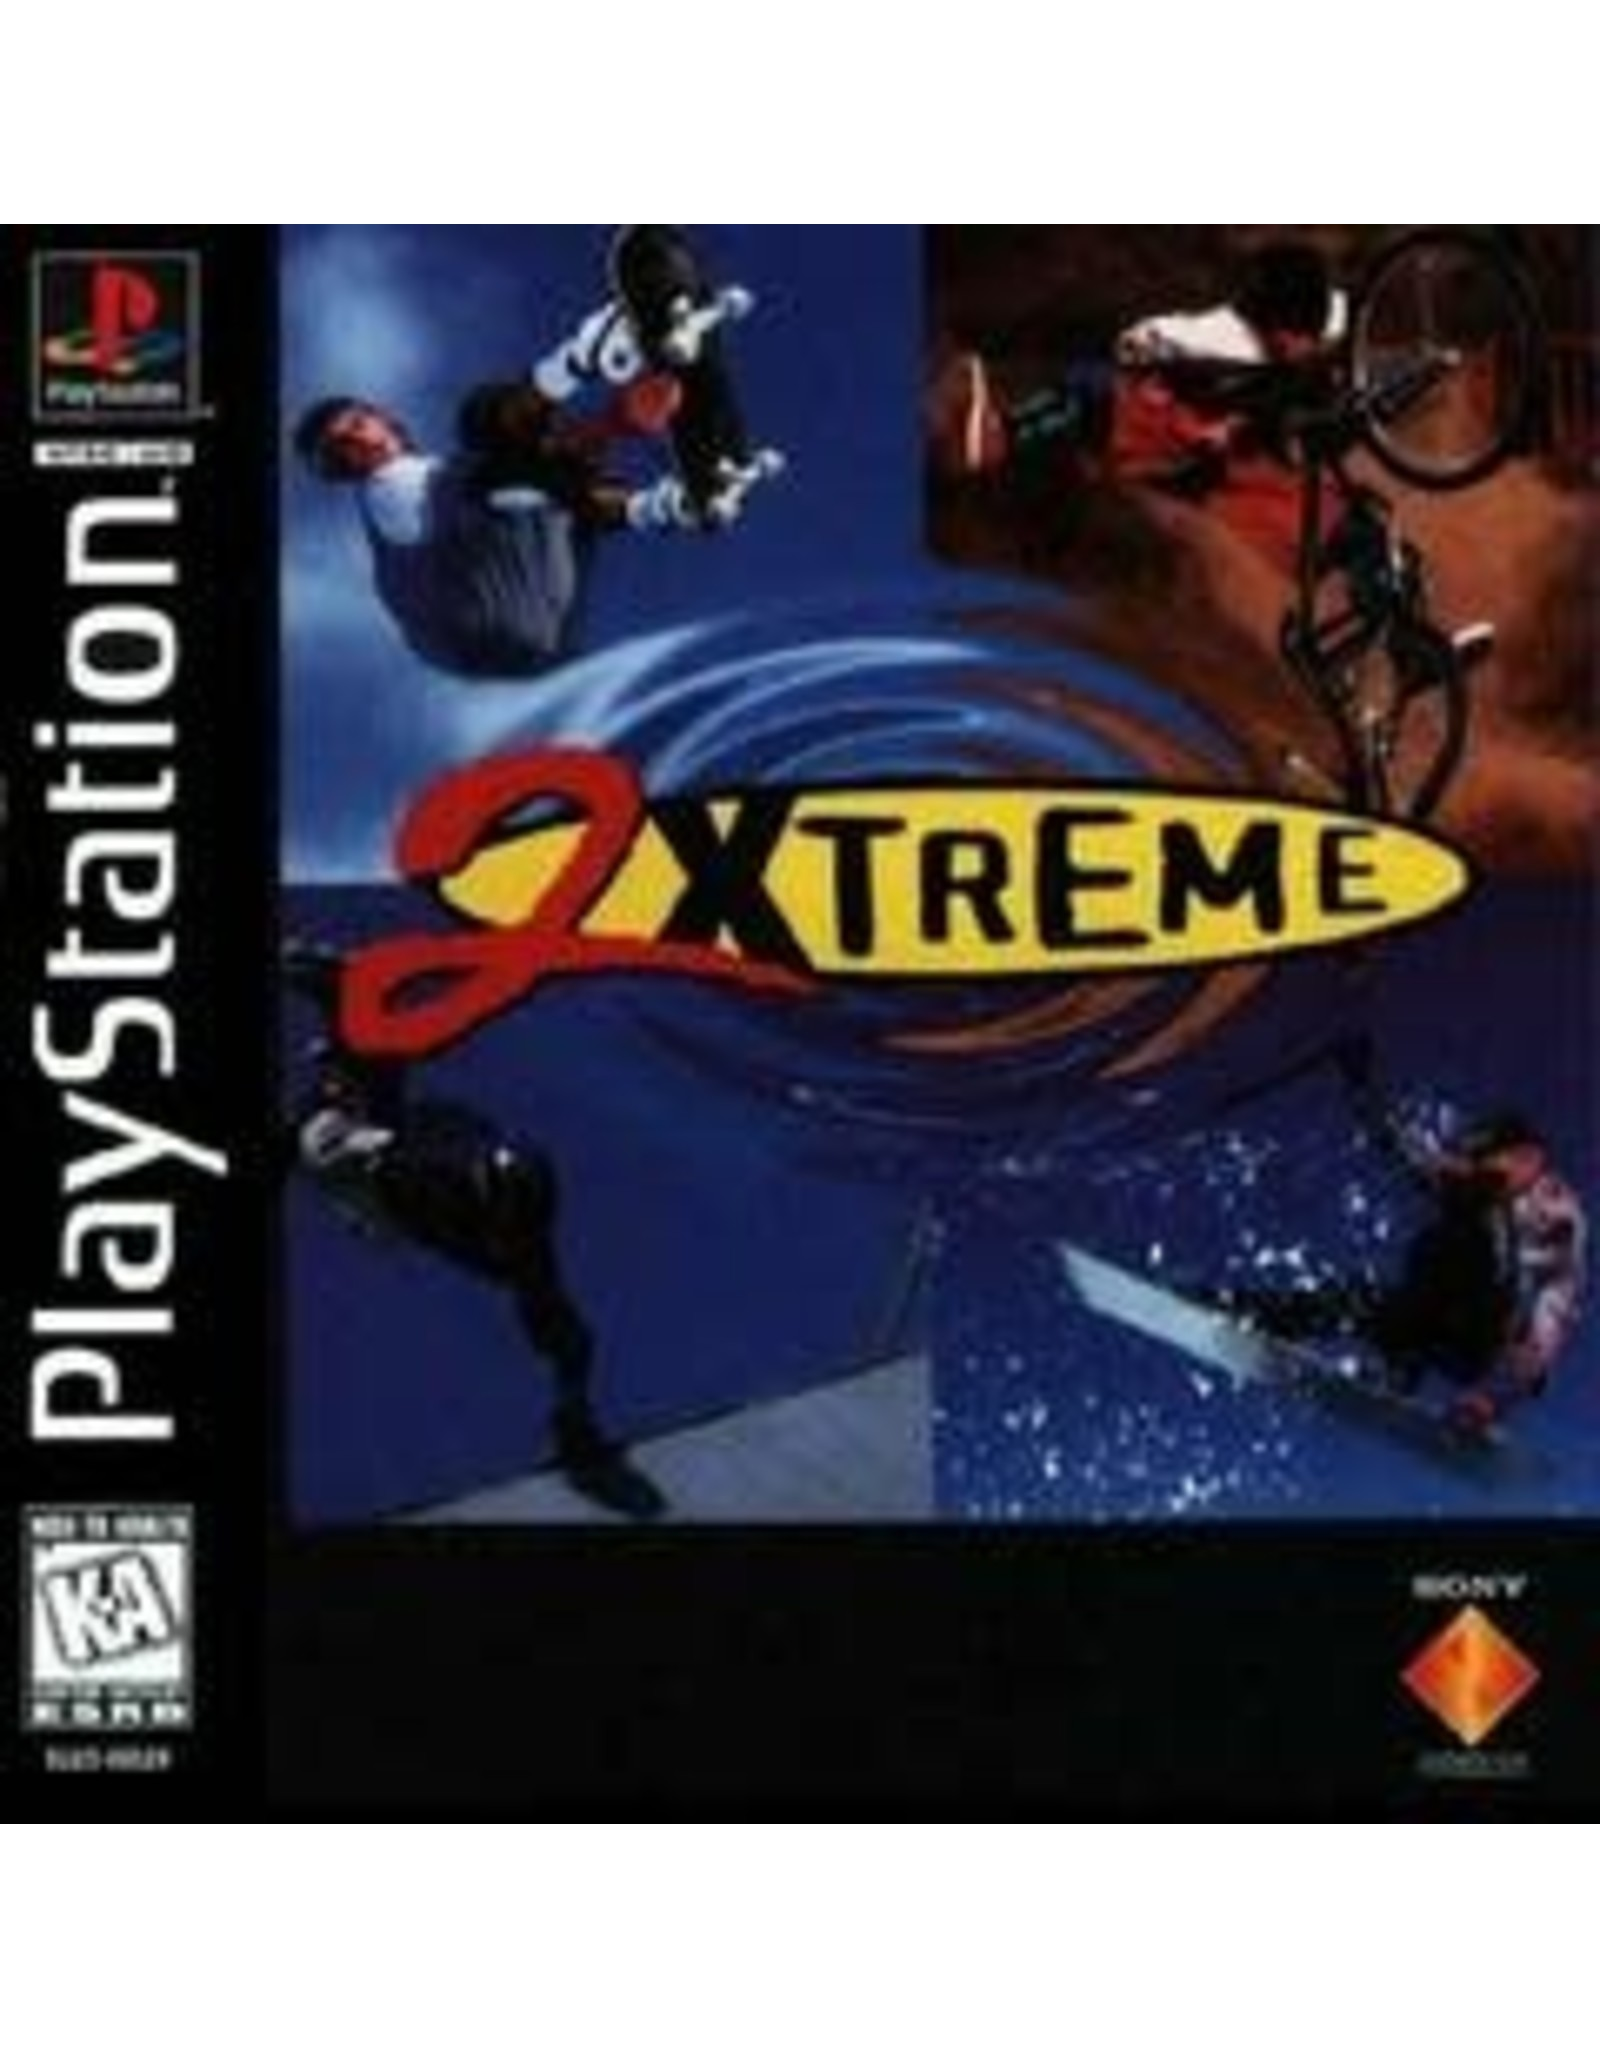 Playstation 2 Xtreme (CiB)